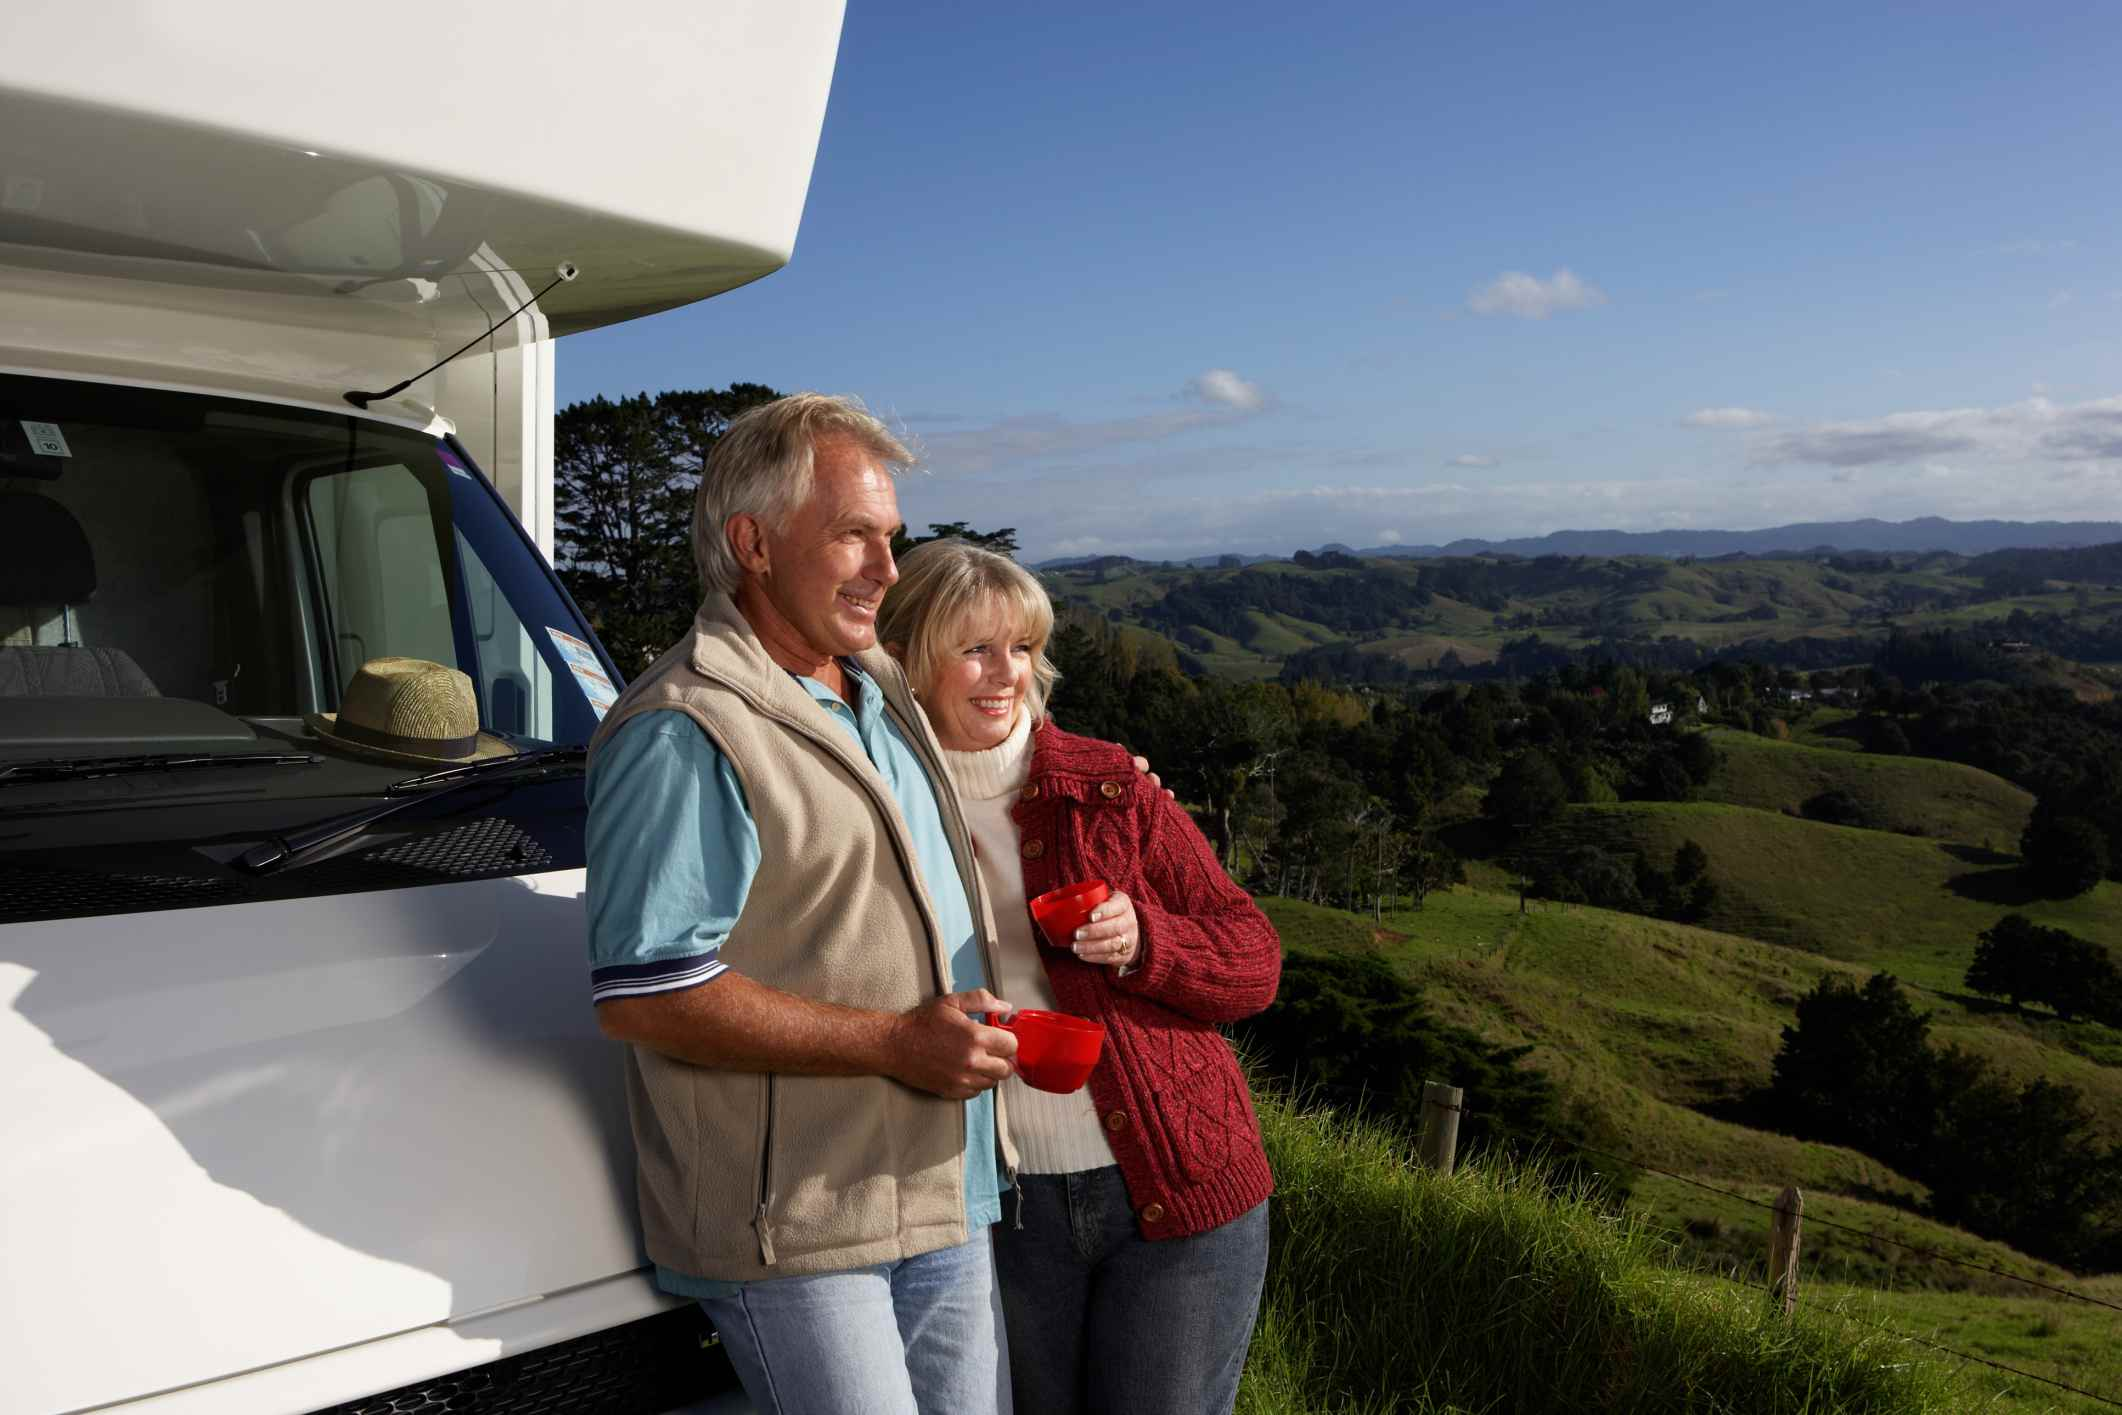 An older couple standing by an RV